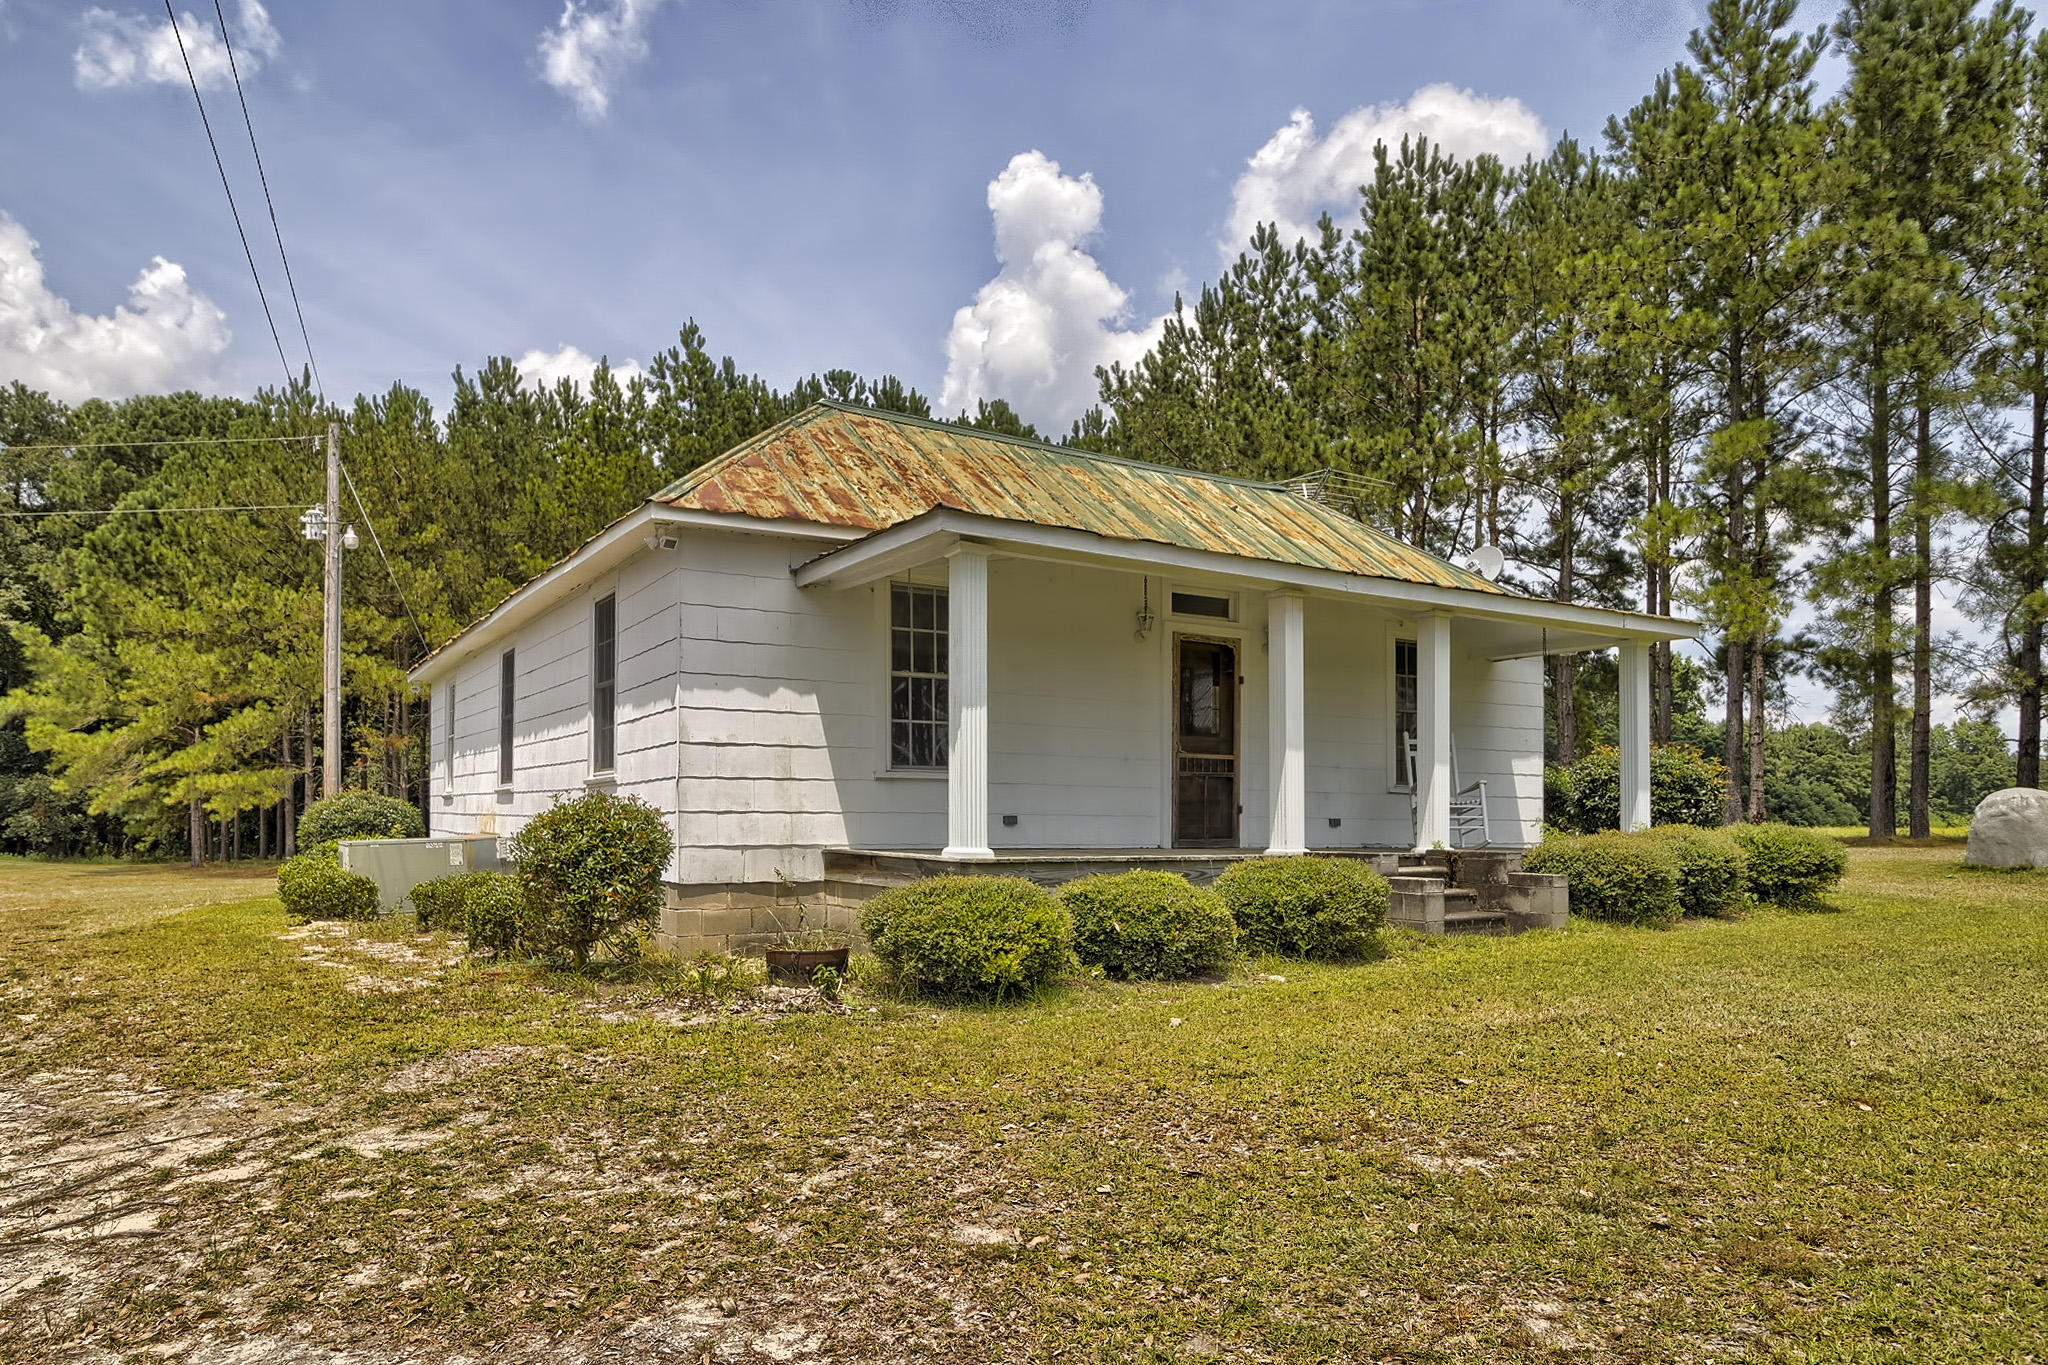 Photo of 1704 Midway Rd, Elloree, SC 29047